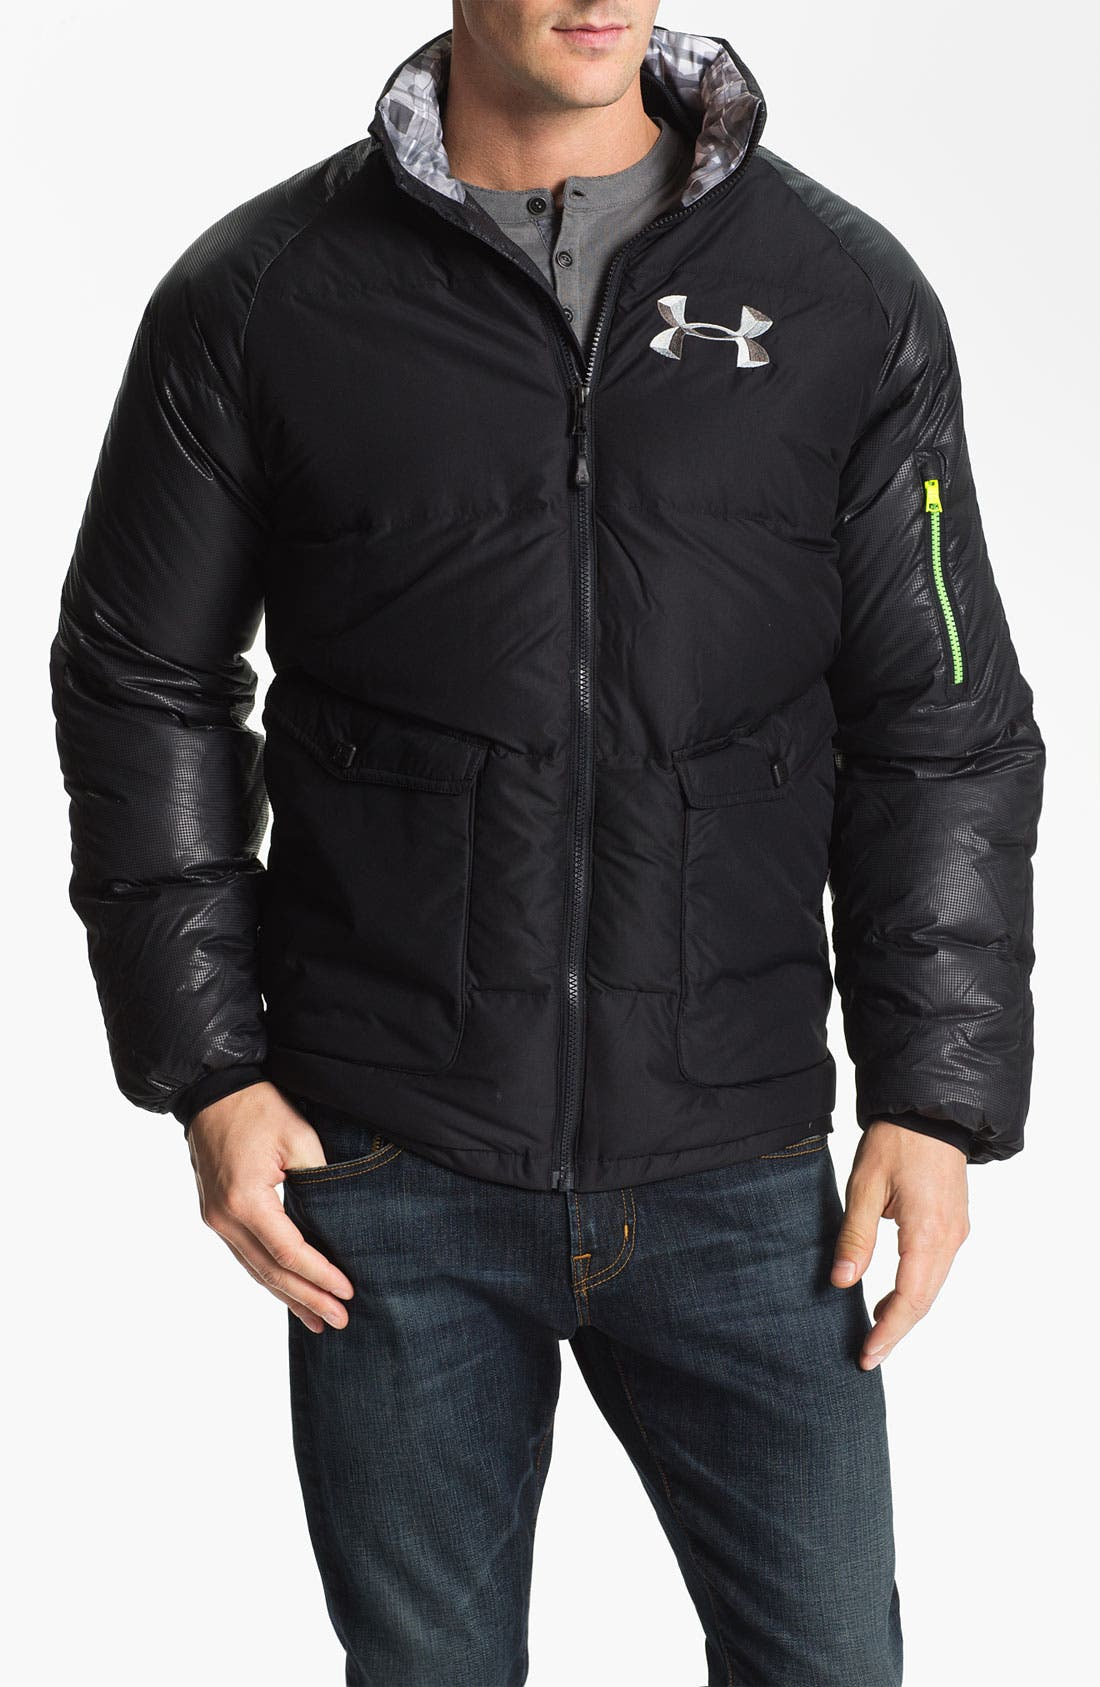 Alternate Image 1 Selected - Under Armour  'Rivalry Storm'  Jacket